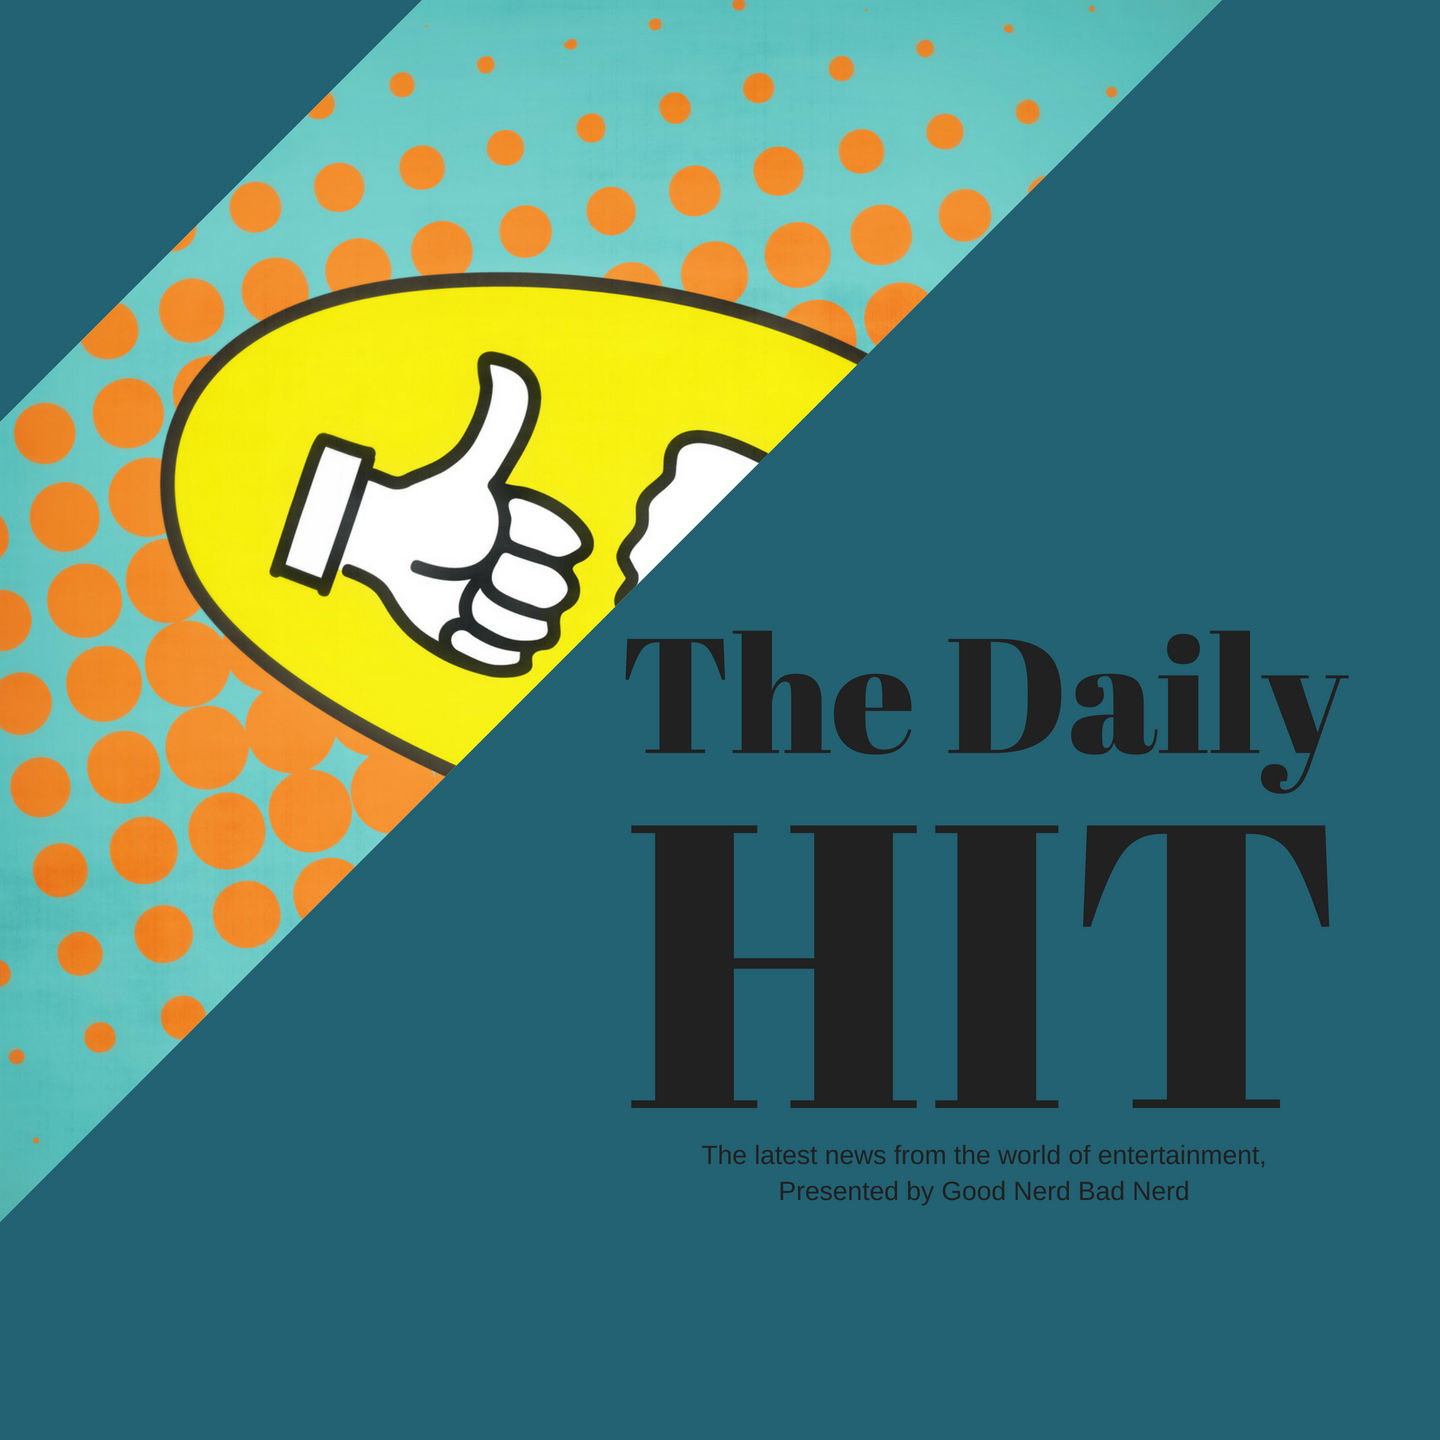 The Daily Hit